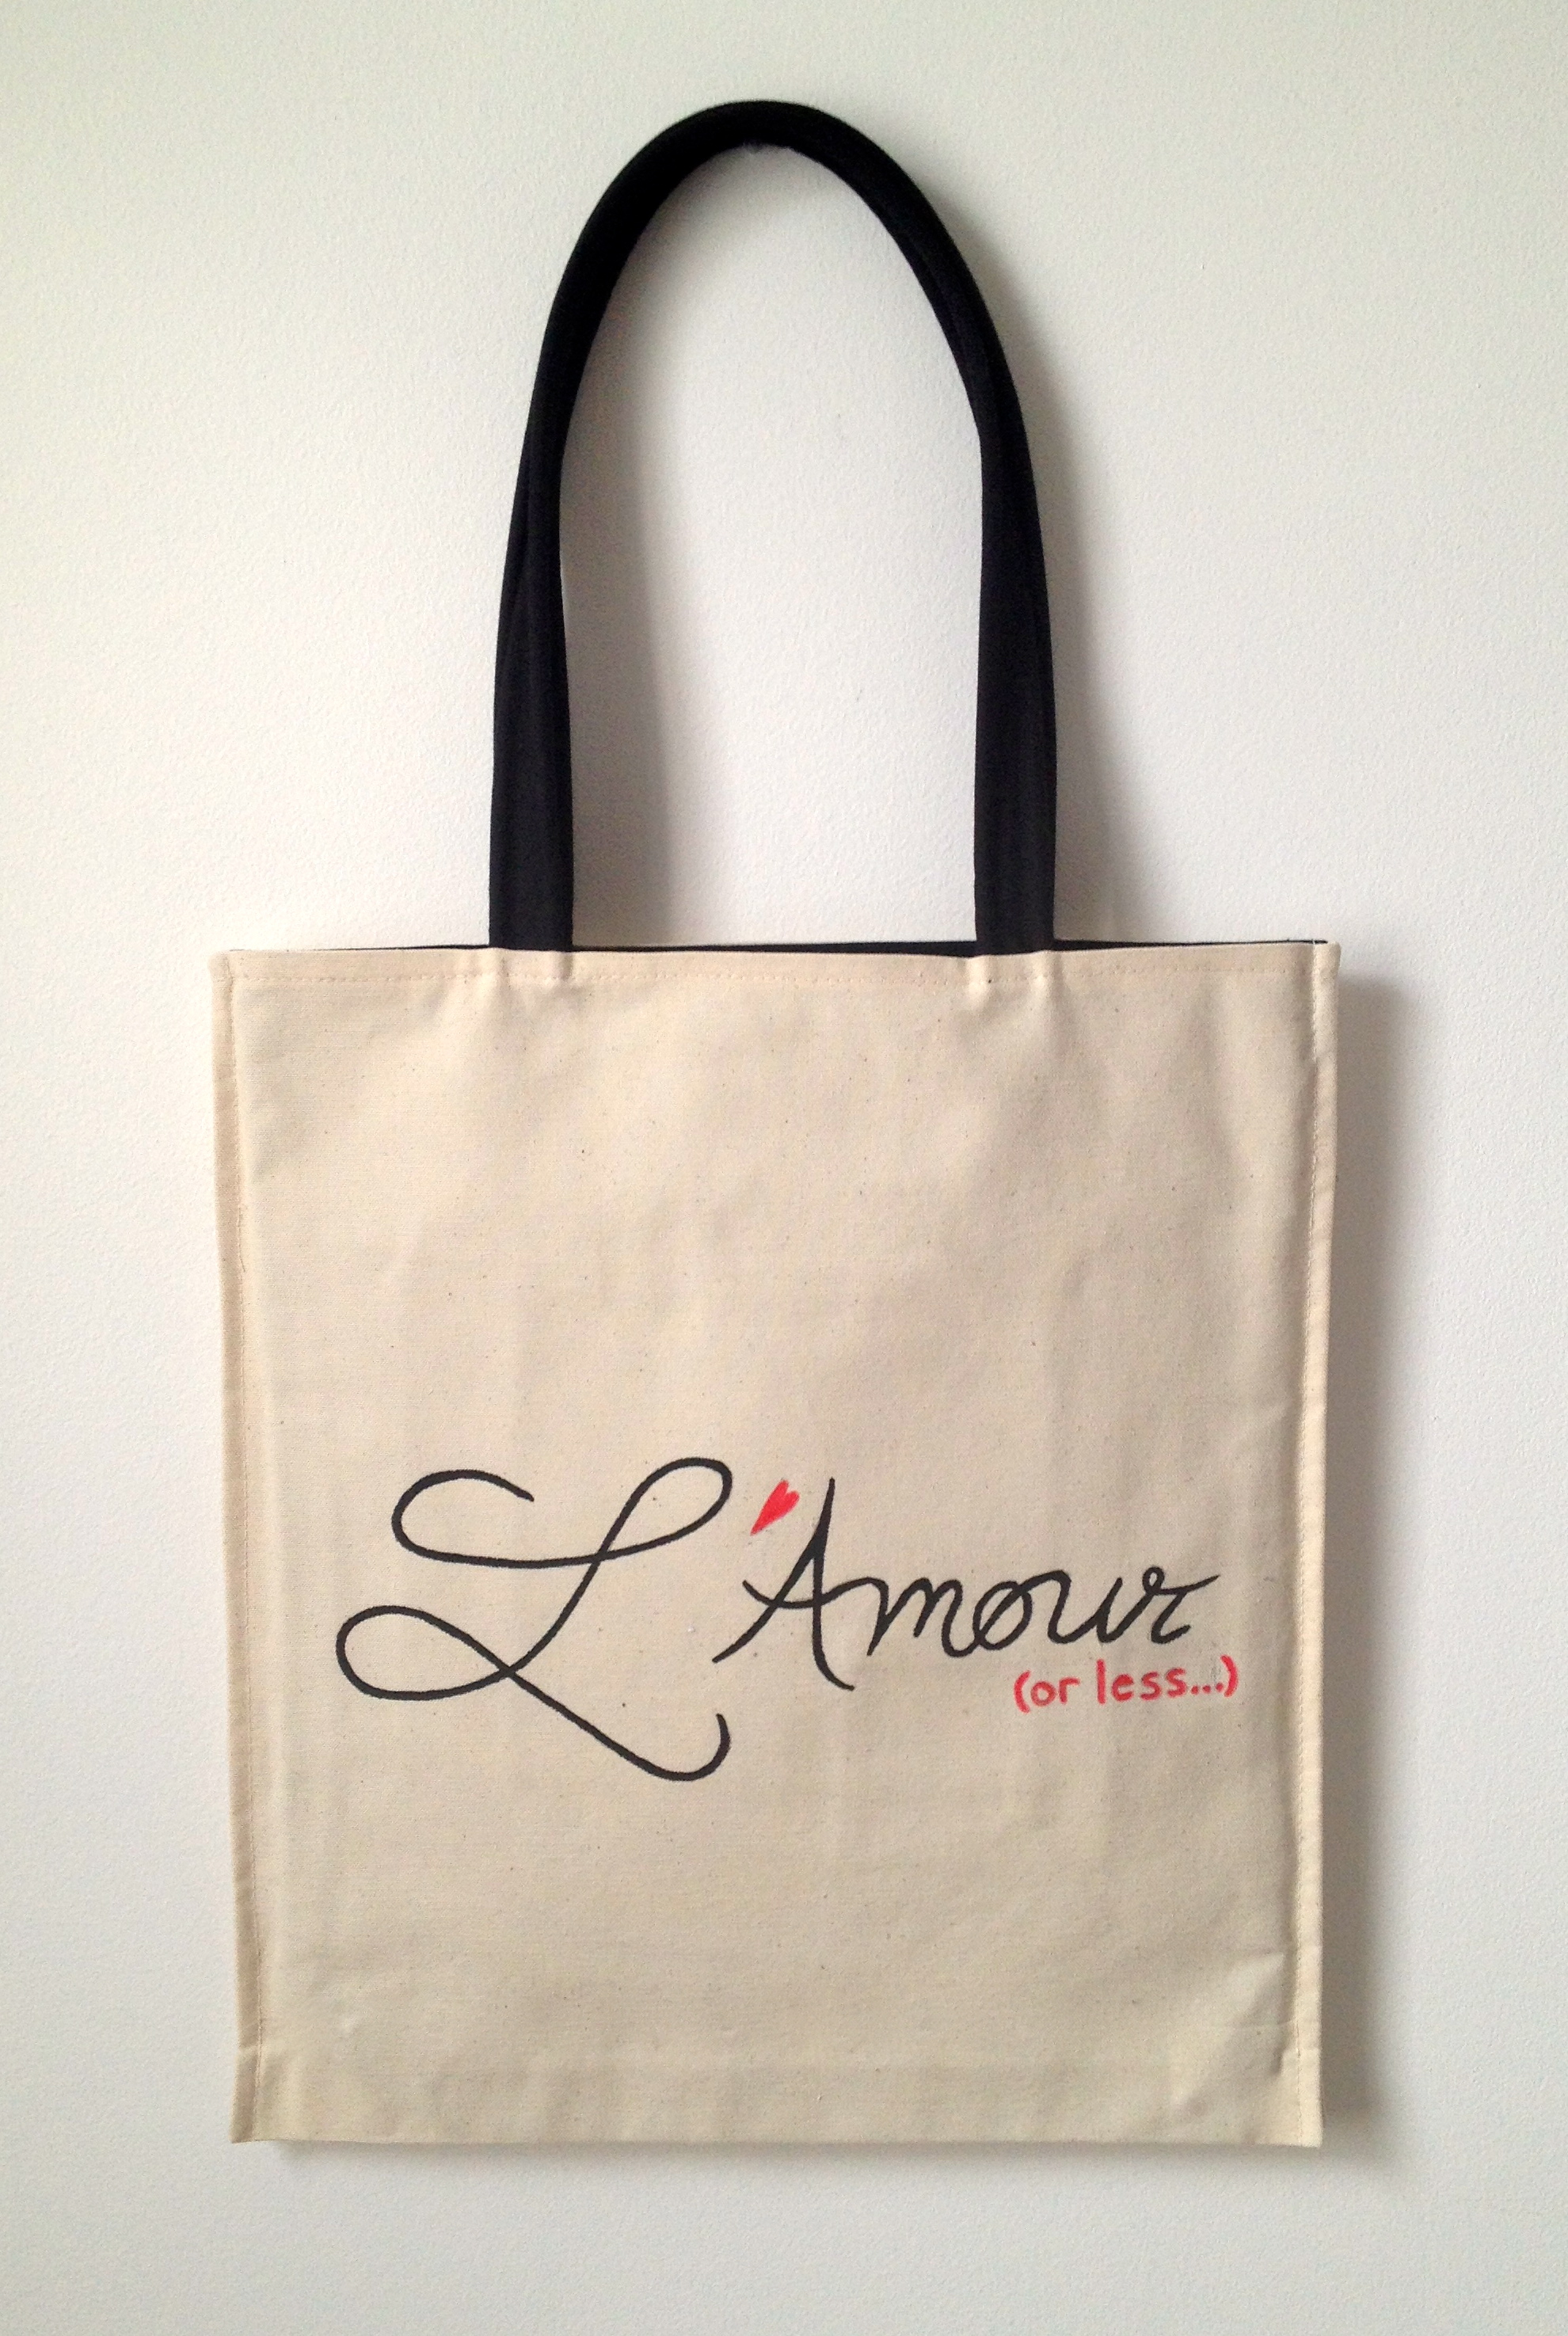 L'Amour (or less) tote by Kasia Dietz